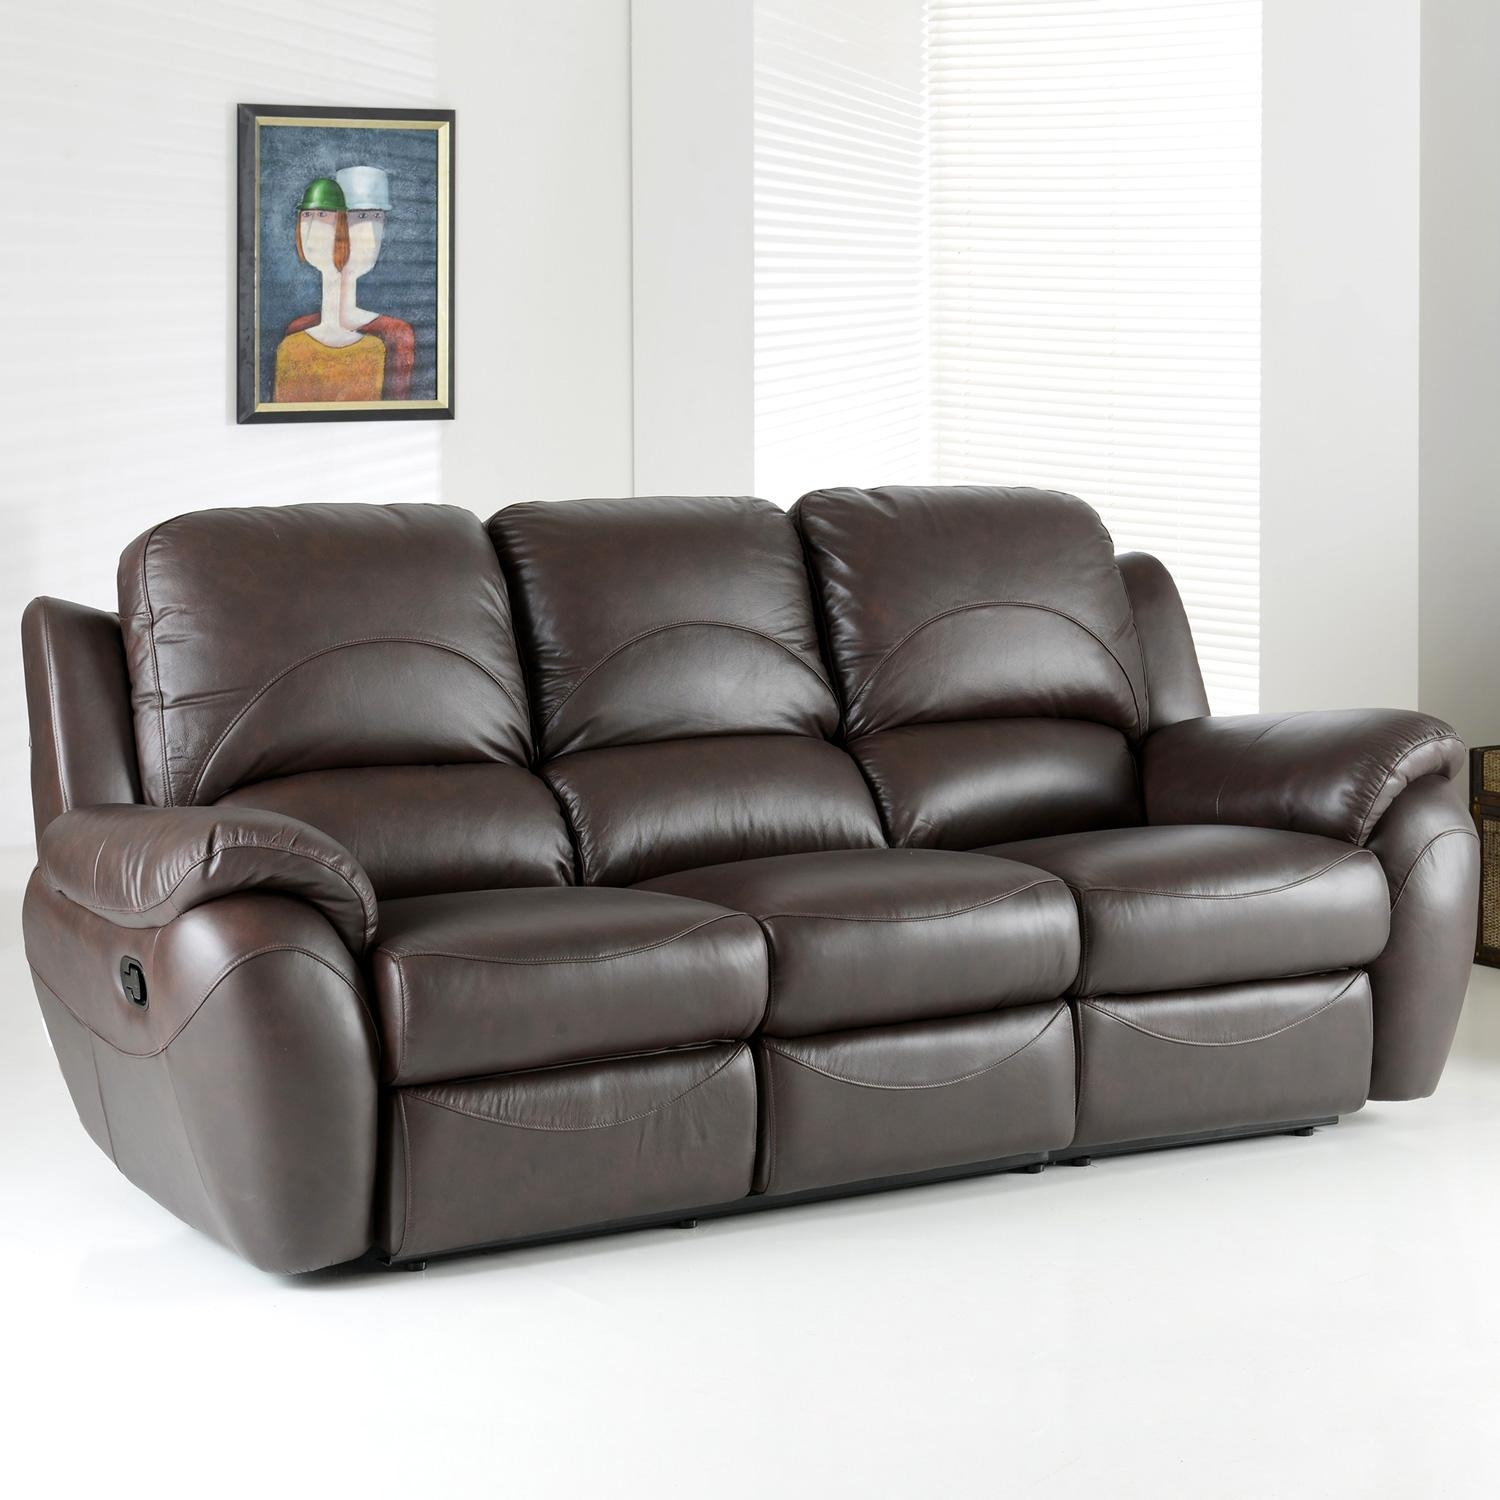 Sofas Center : Rareeater Reclinerofa Picture Design Kacey Chair In 3 Seater Leather Sofas (Image 16 of 20)